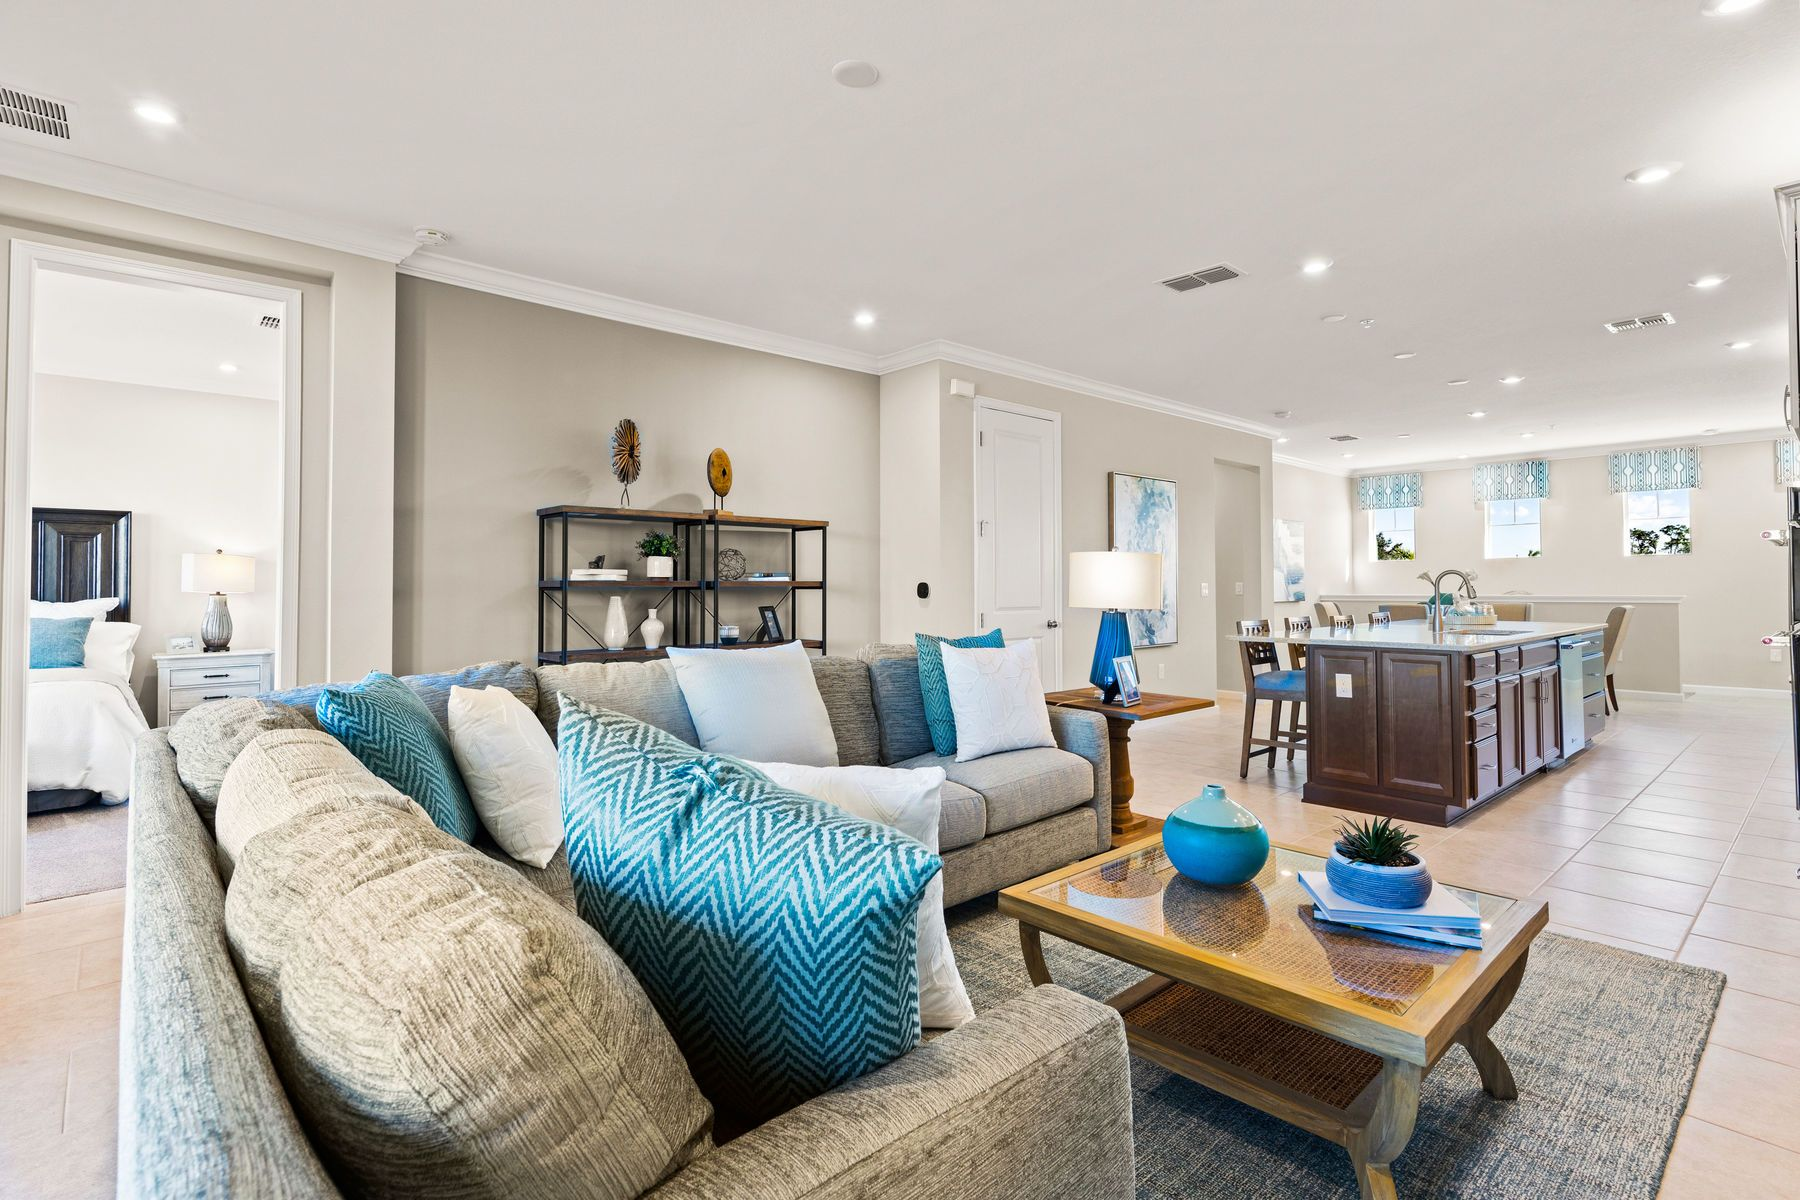 Living Area featured in the Seabright By Mattamy Homes in Naples, FL